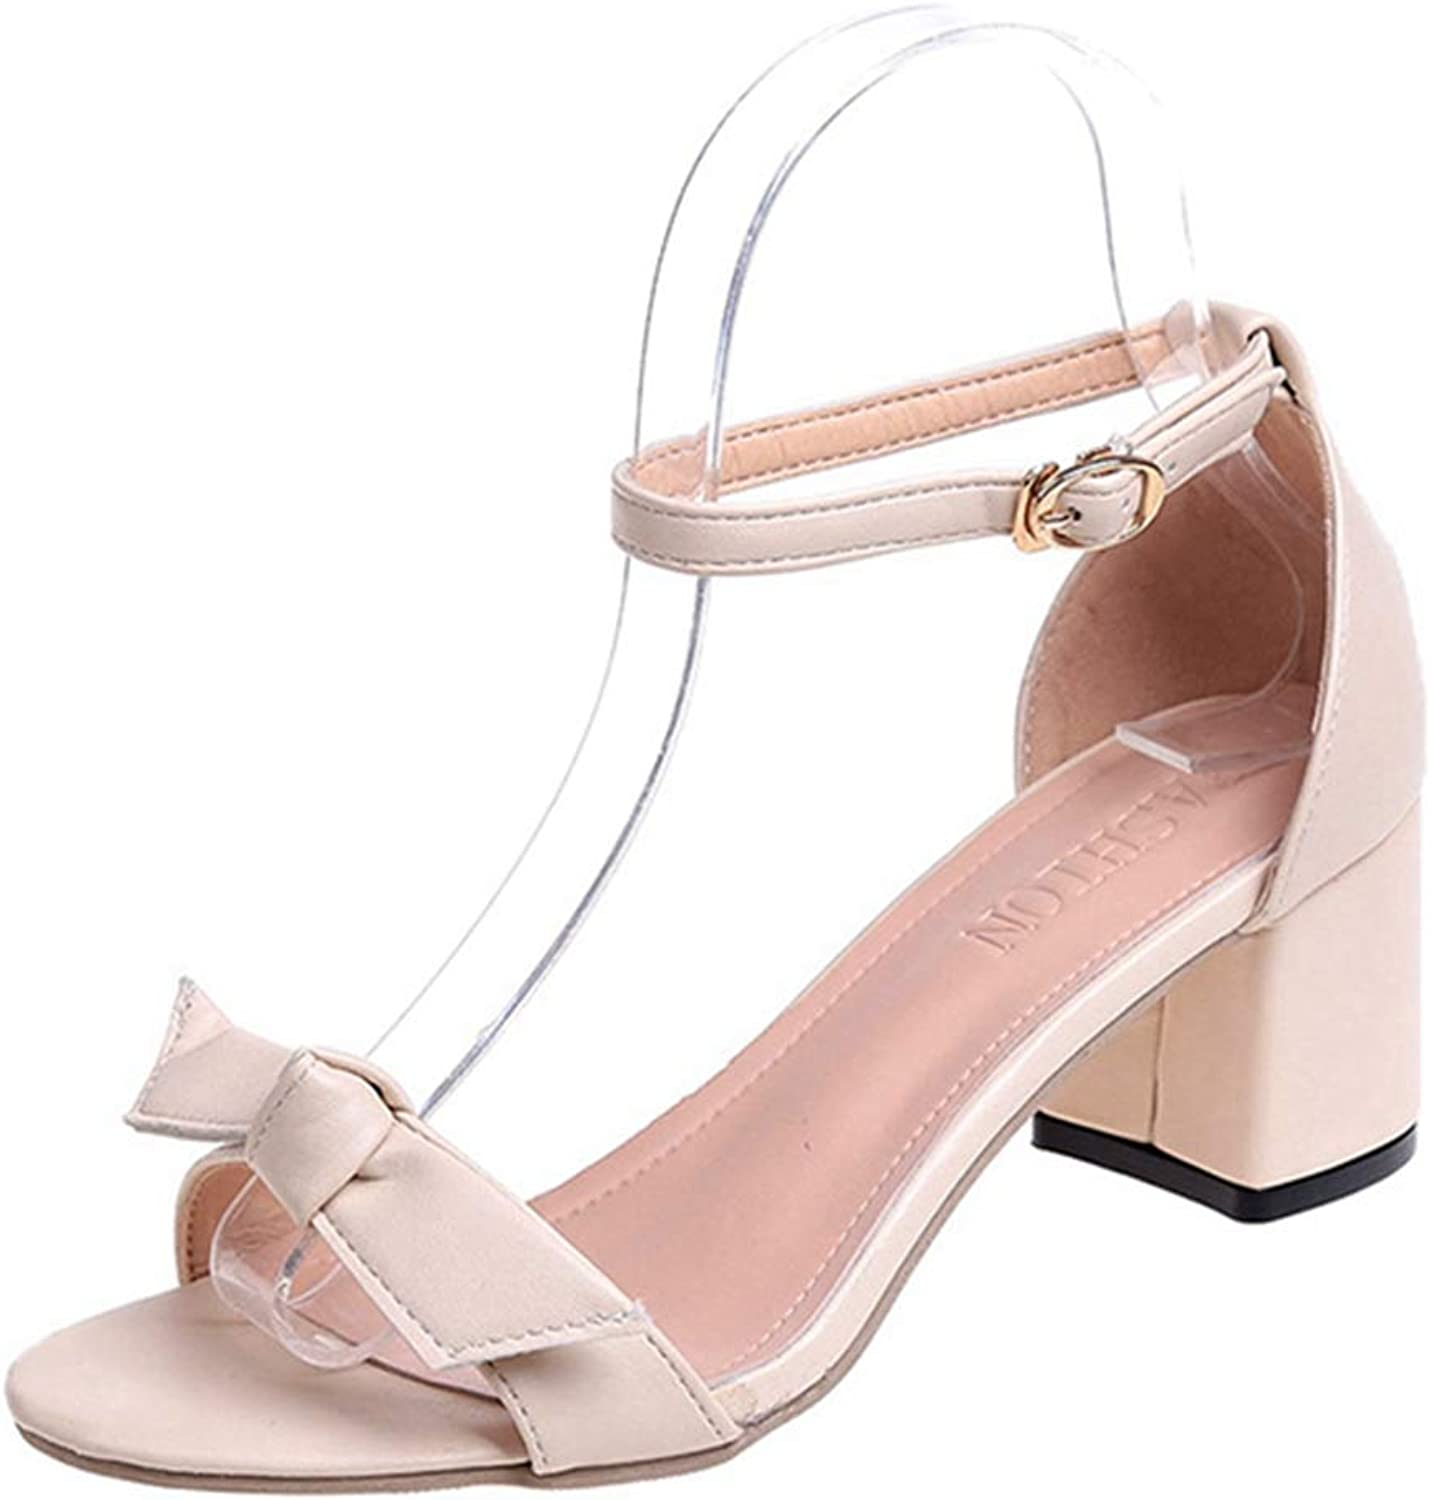 GIY Women's Bowknot Strappy Mid Block Heel Sandals Open Toe Party Simple Classic Ankle Strap Chunky Heel Sandals